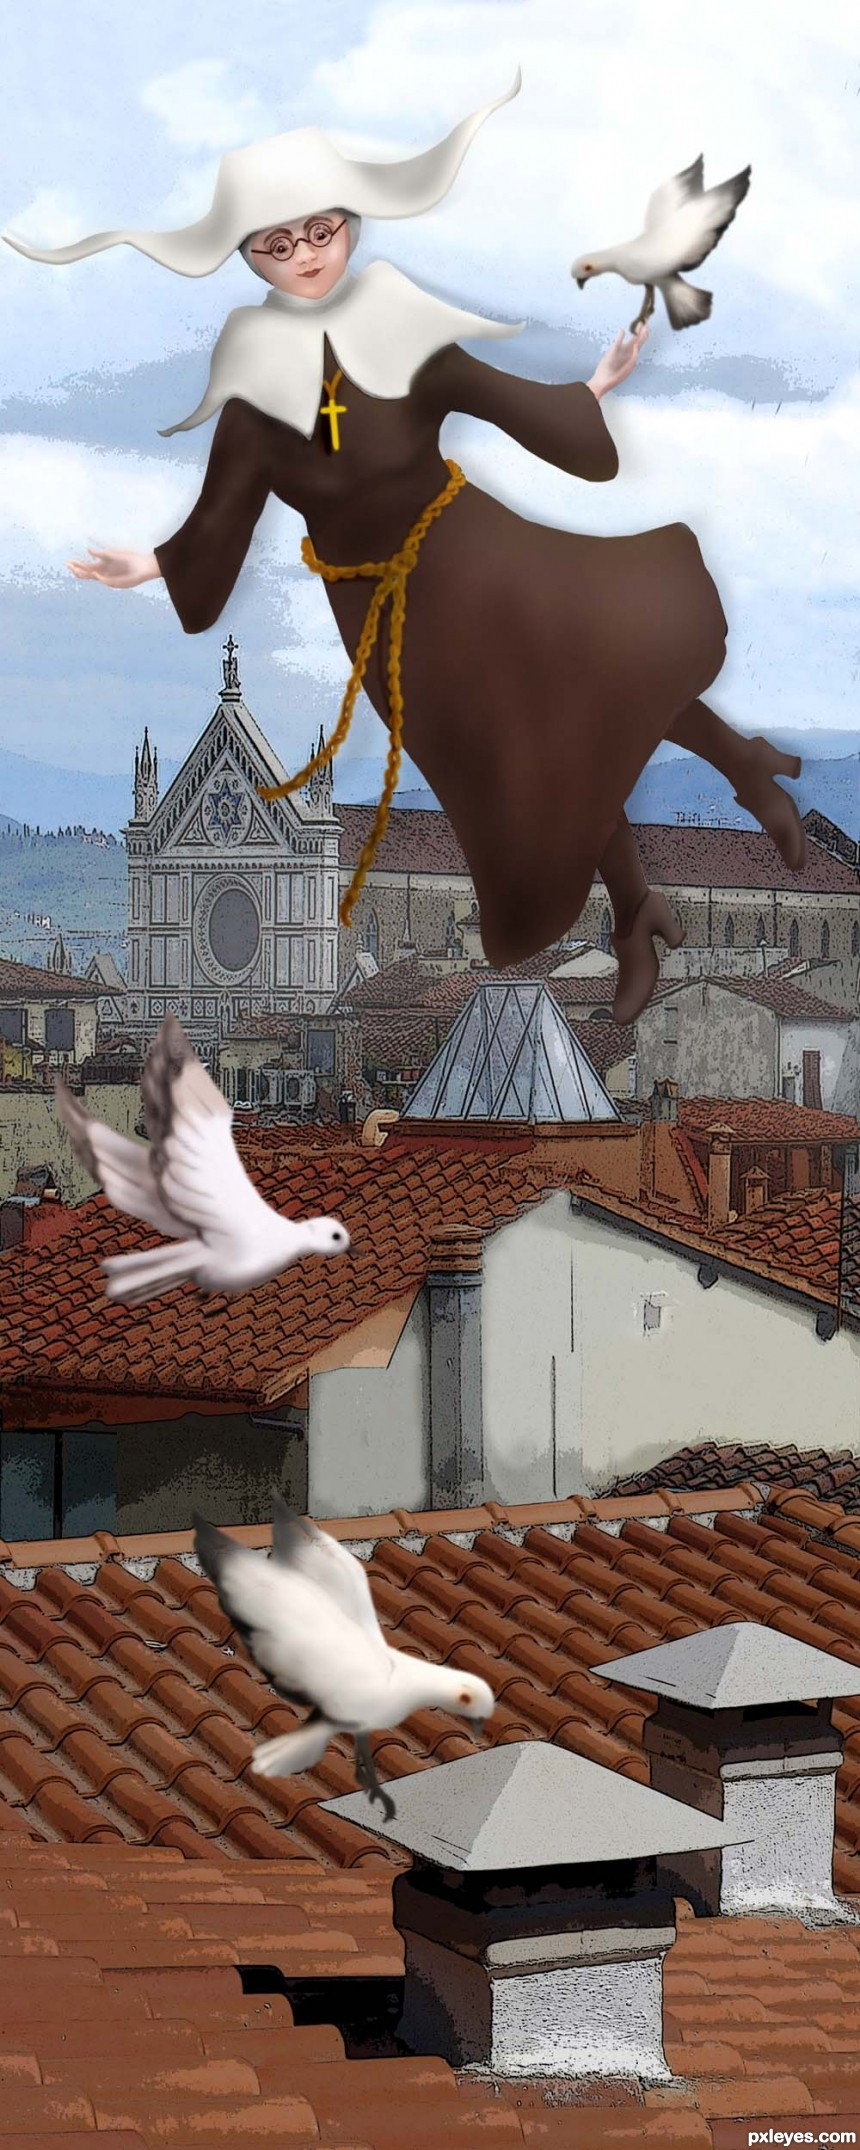 Flying Nun photoshop picture)